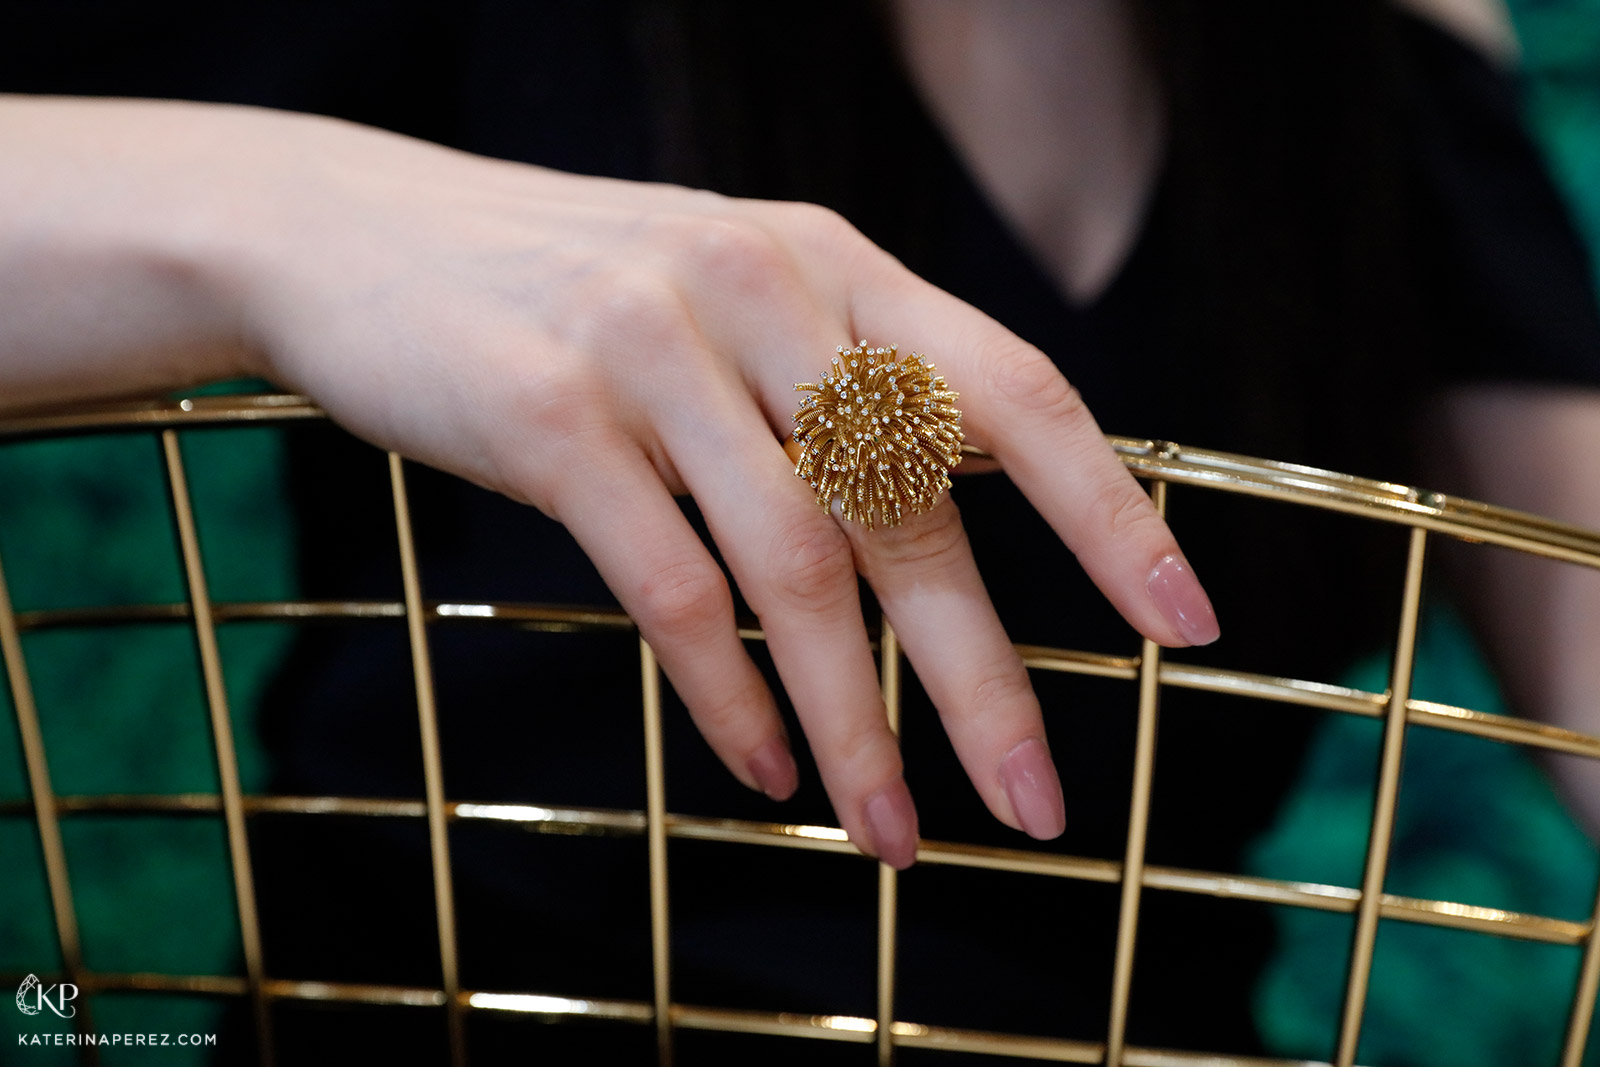 CADAR 'Fur' ring in yellow and diamonds from the 'Second Skin' collection